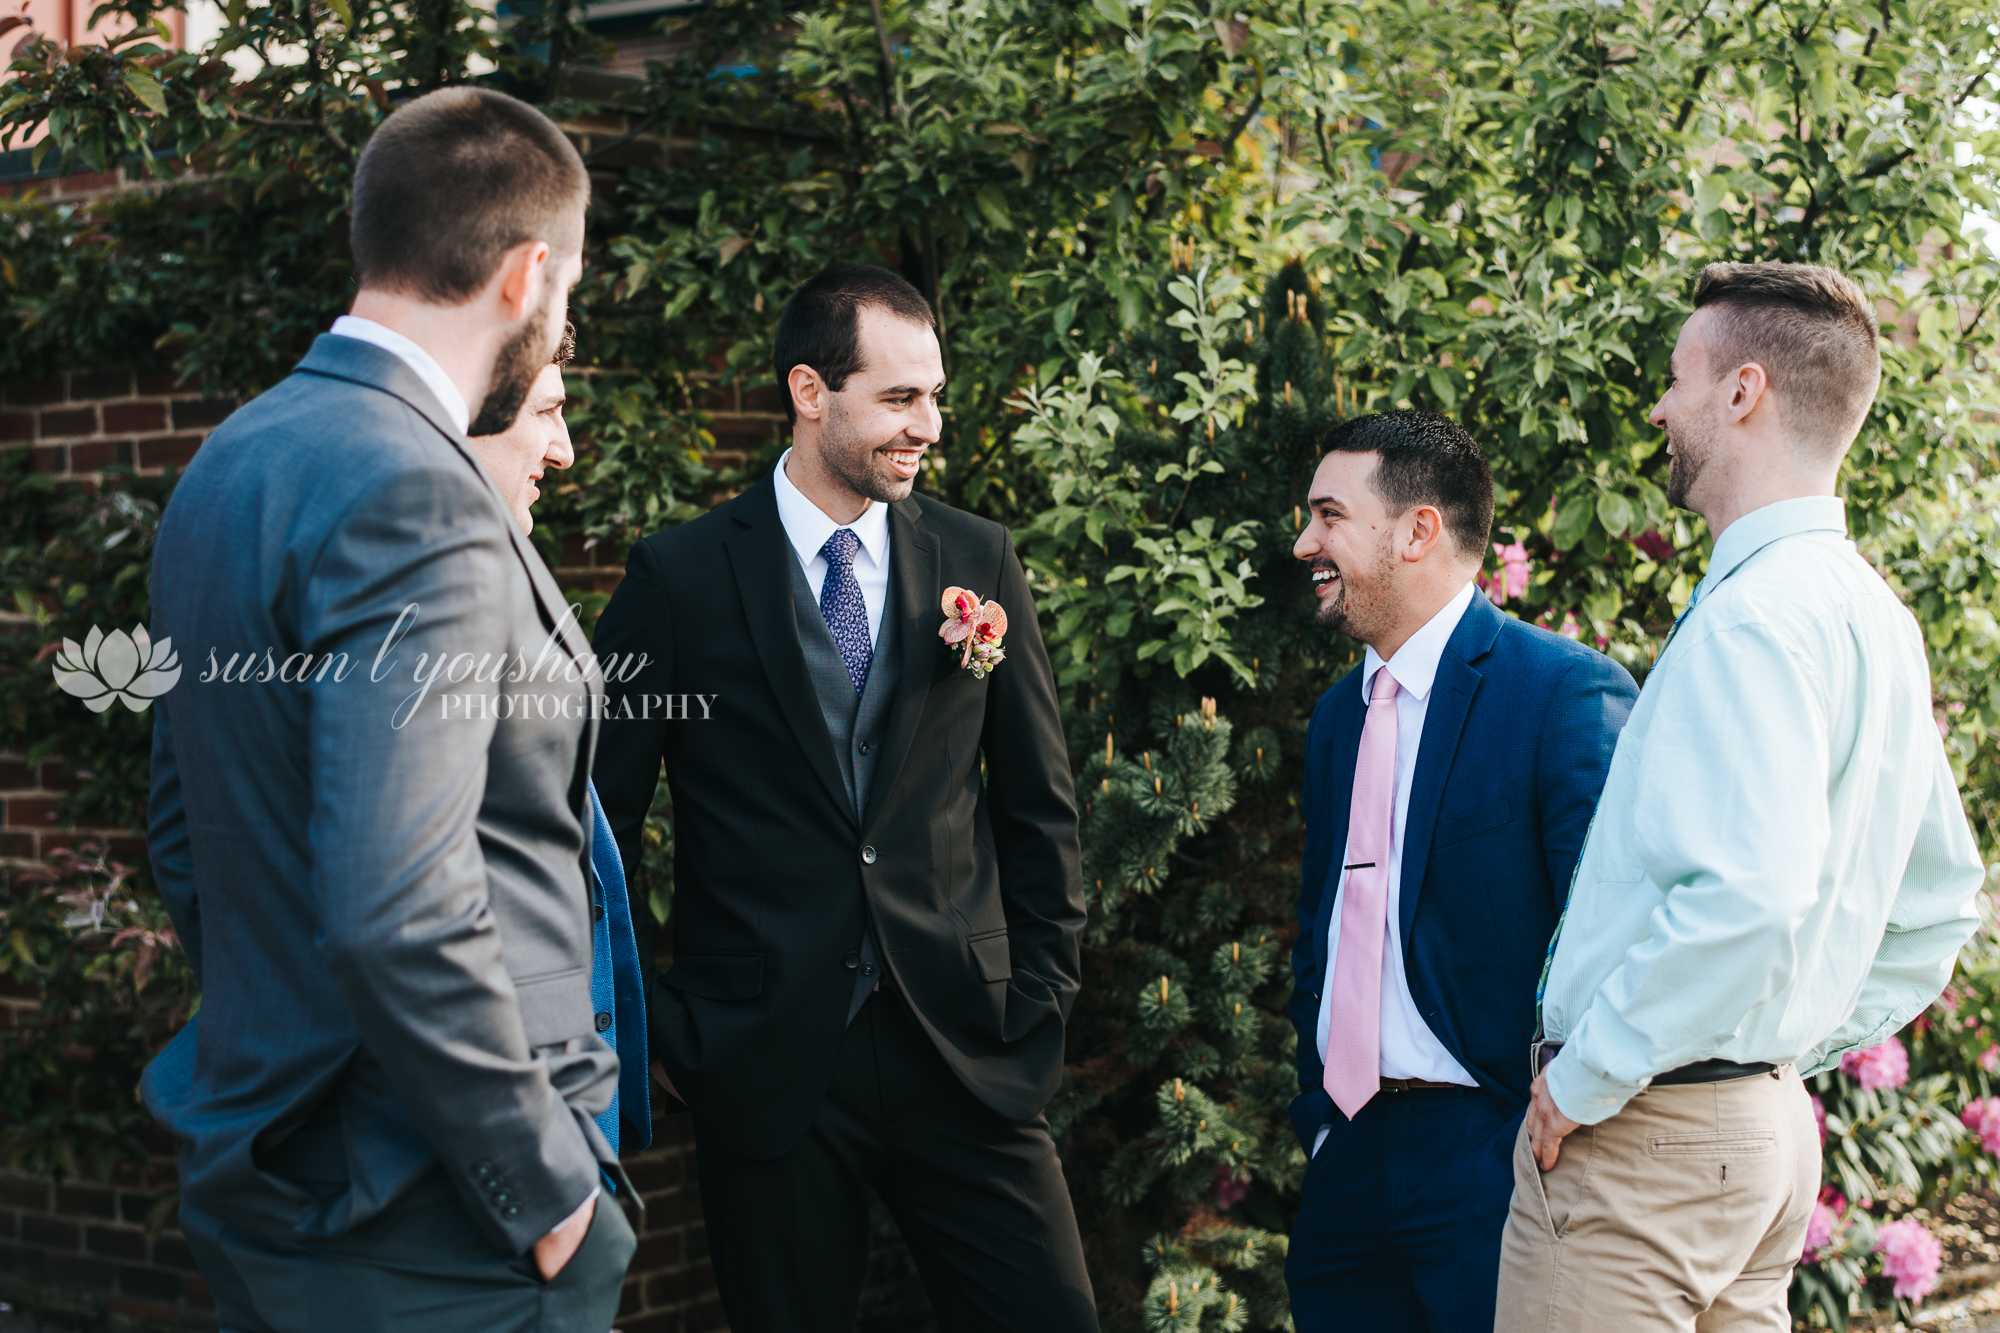 Adena and  Erik Wedding 05-17-2019 SLY Photography-84.jpg